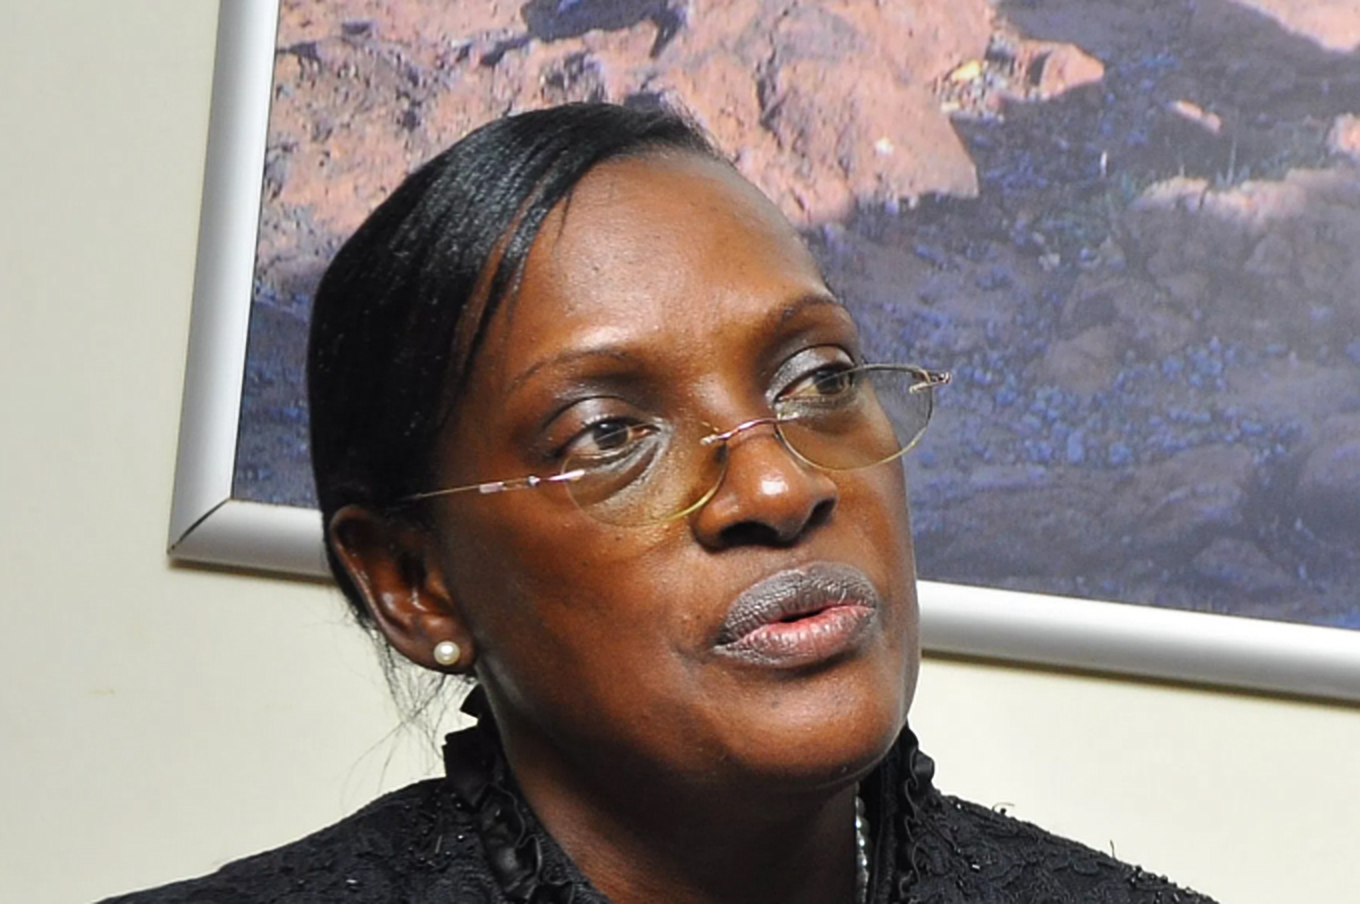 Former Bank of Uganda Director Justine Bagyenda affirmed that she is no longer at the Central Bank and has not business there (FILE PHOTO)